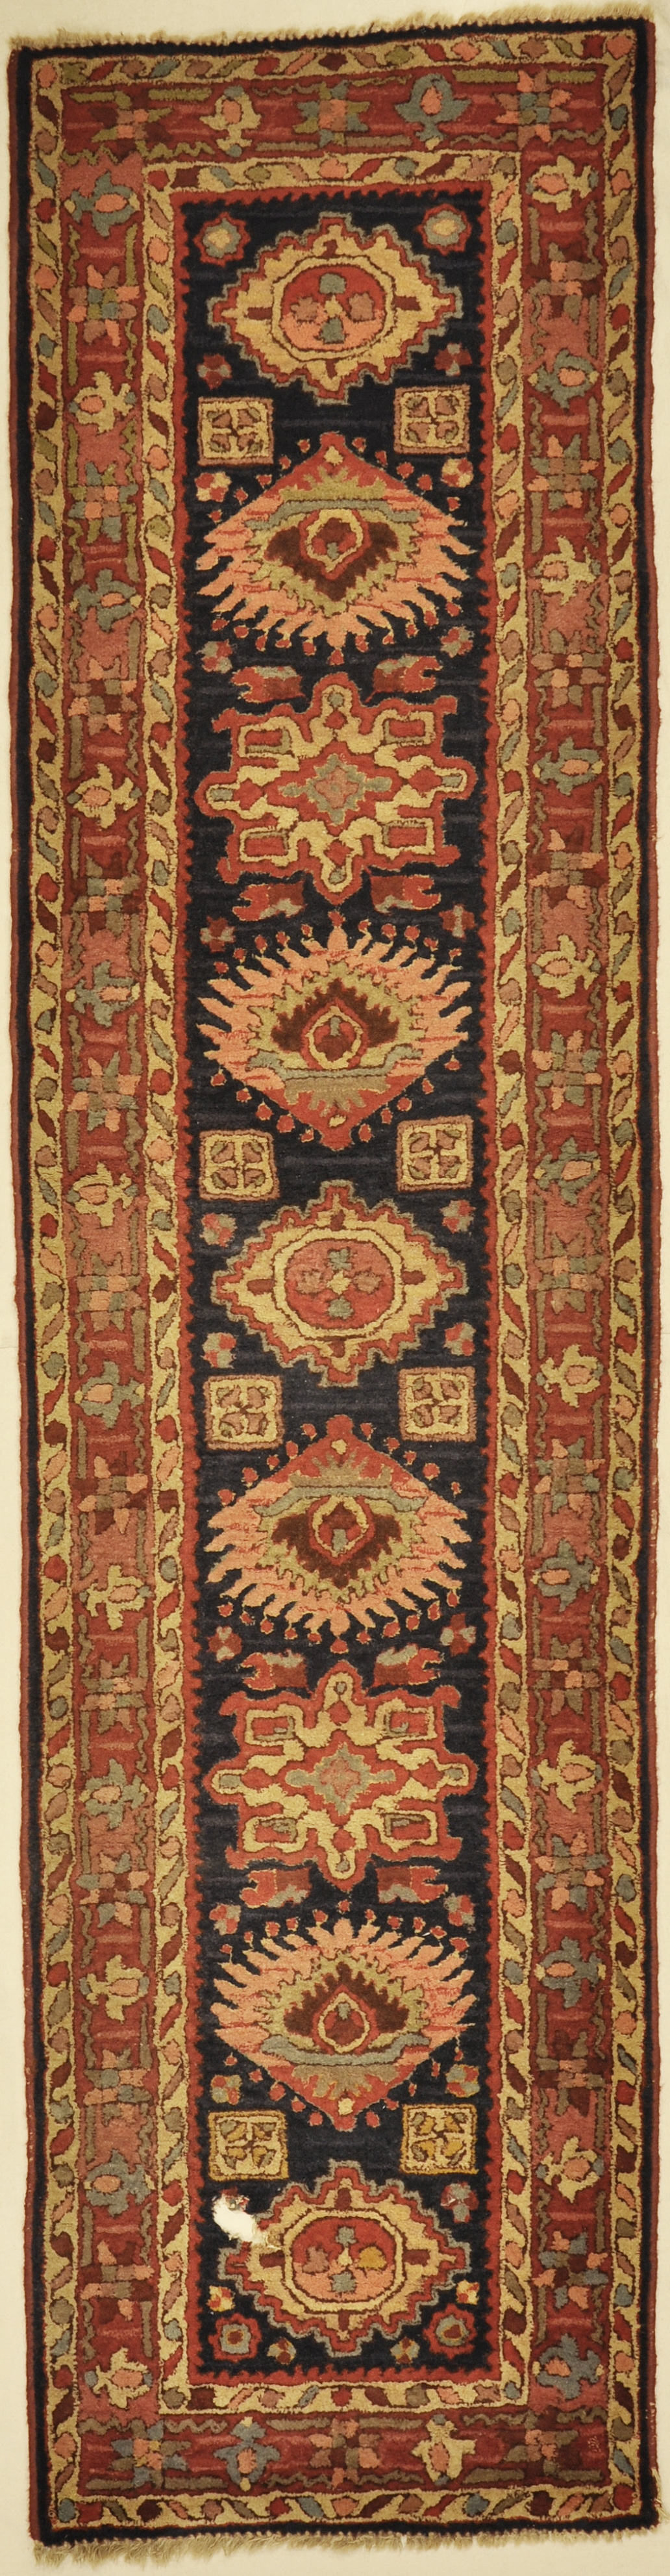 Antique Tetex rugs and more oriental carpet 33843-